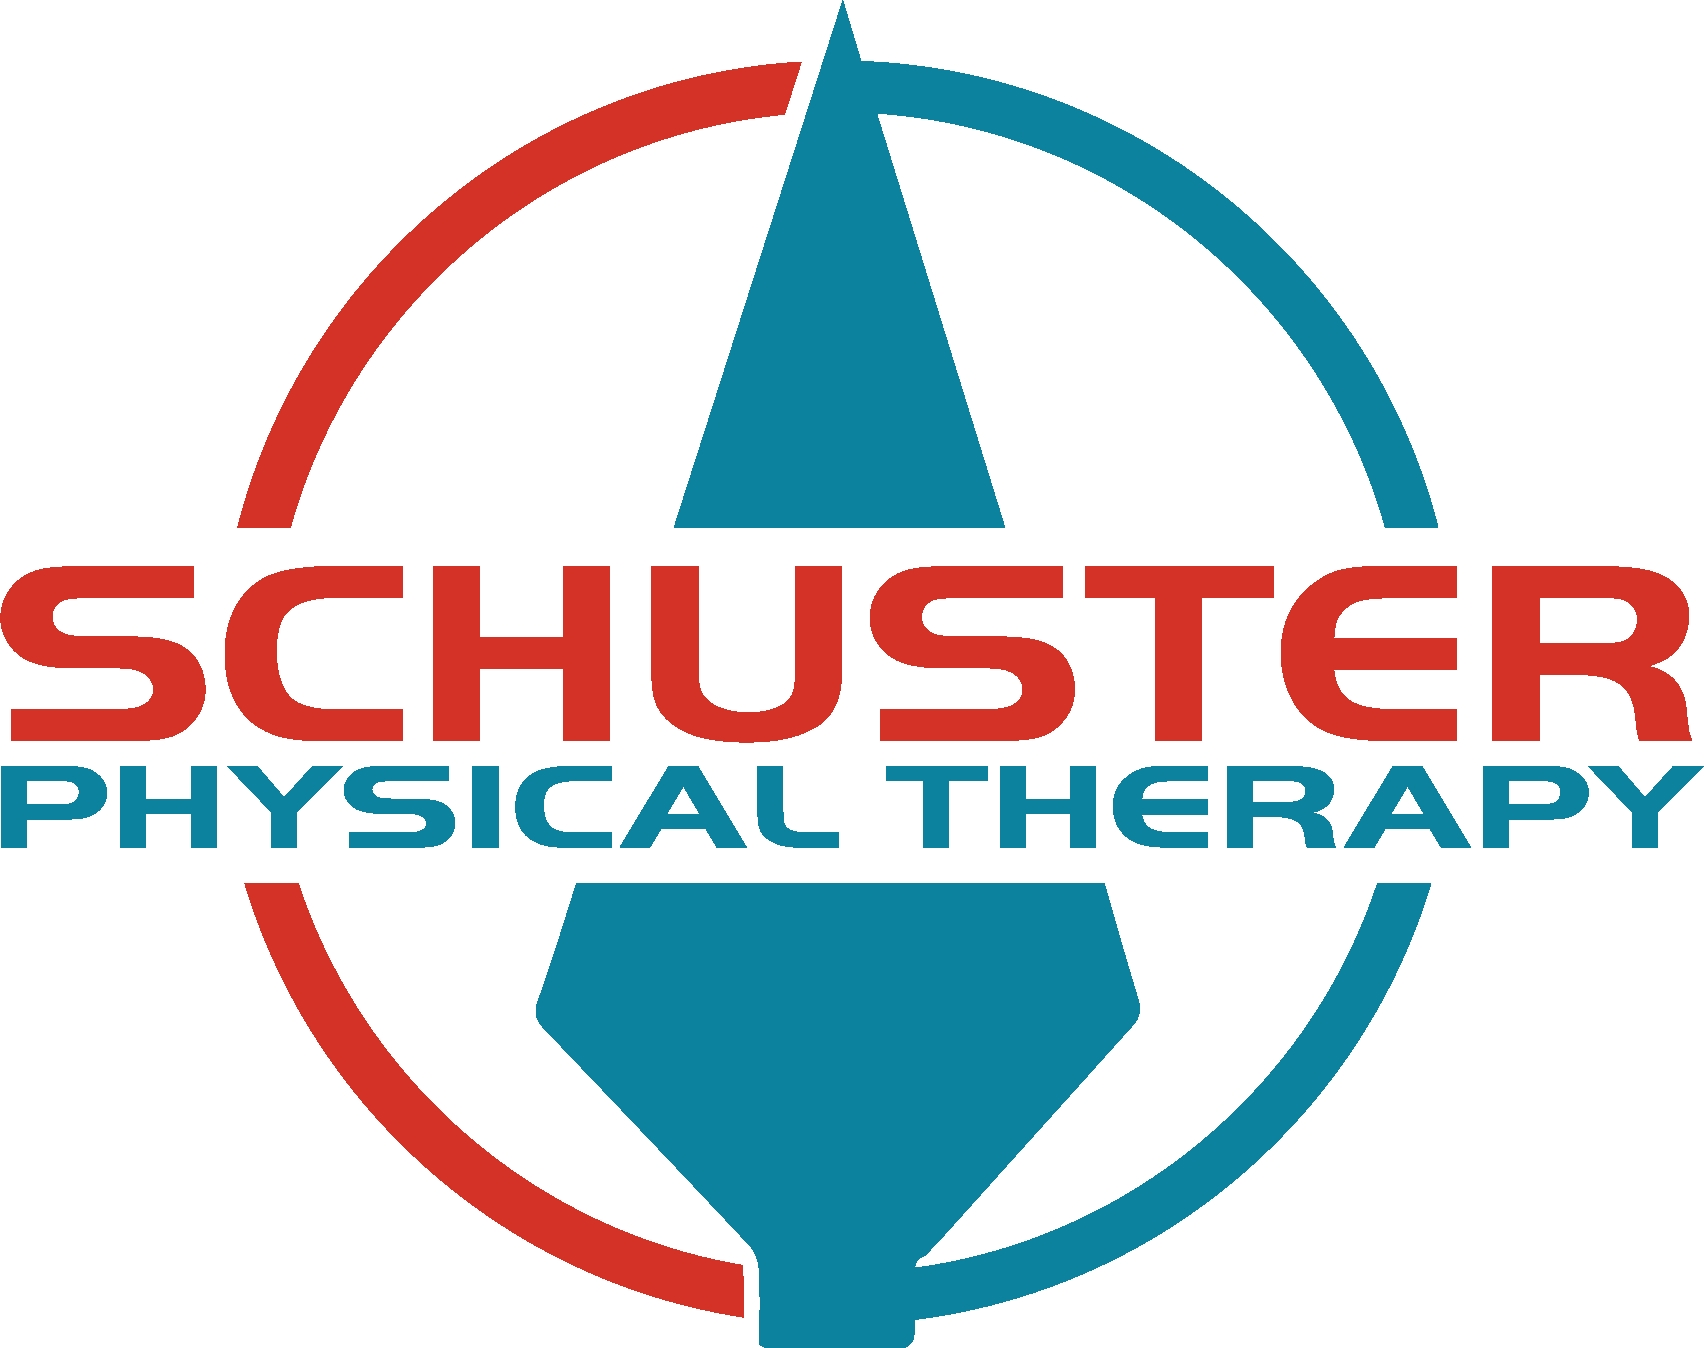 Schuster Physical Therapy logo